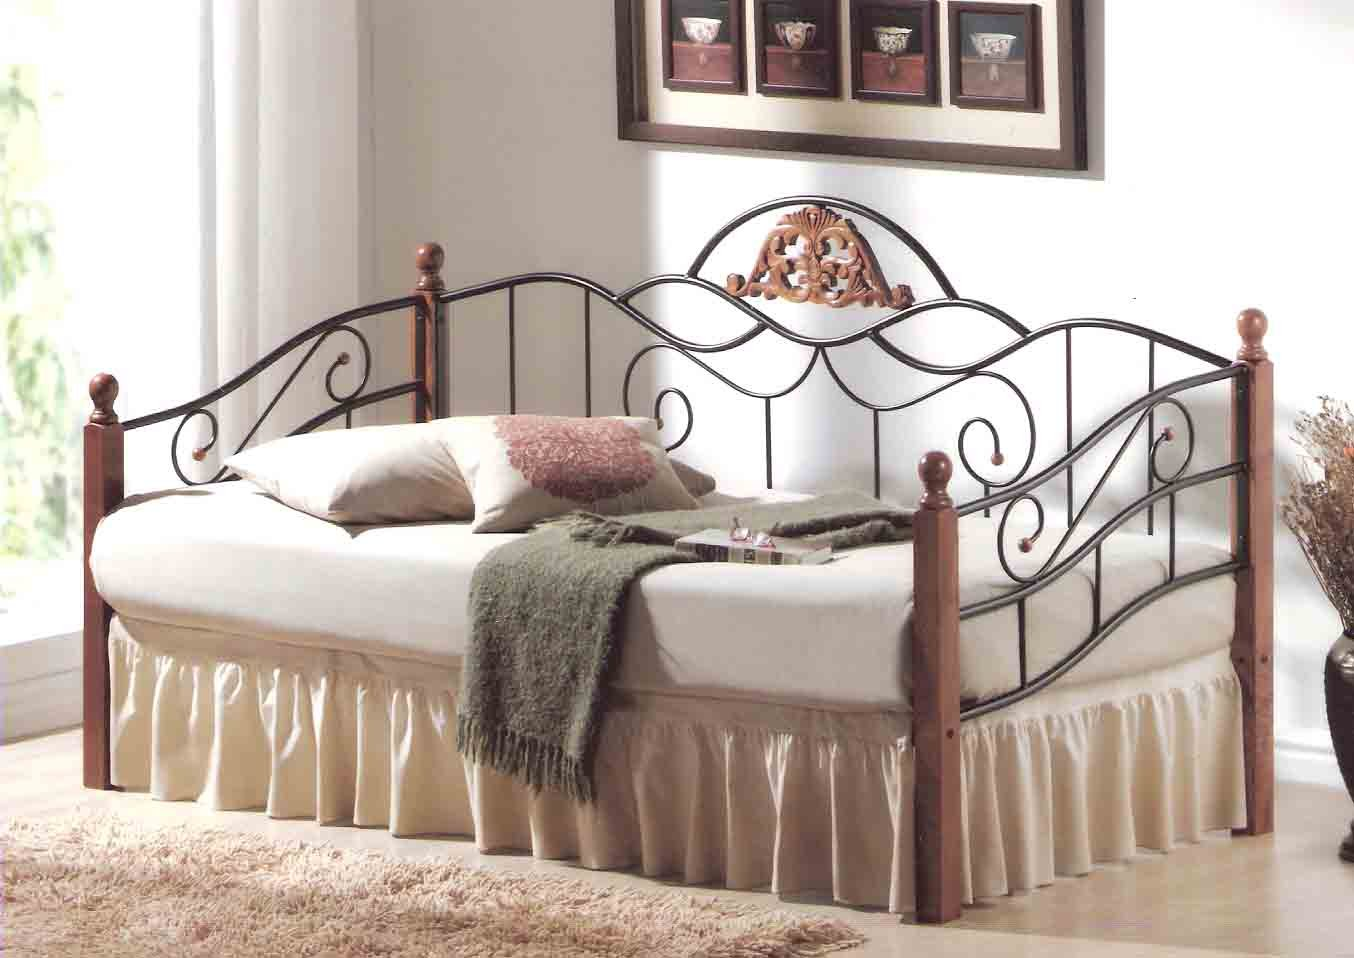 metal bedroom sets. metal bed,bedroom set,bedroom furniture,furniture,bedroom,metal bedroom set,metal bedroom,home furniture,bedroom set - buy bedroom,bedroom sets